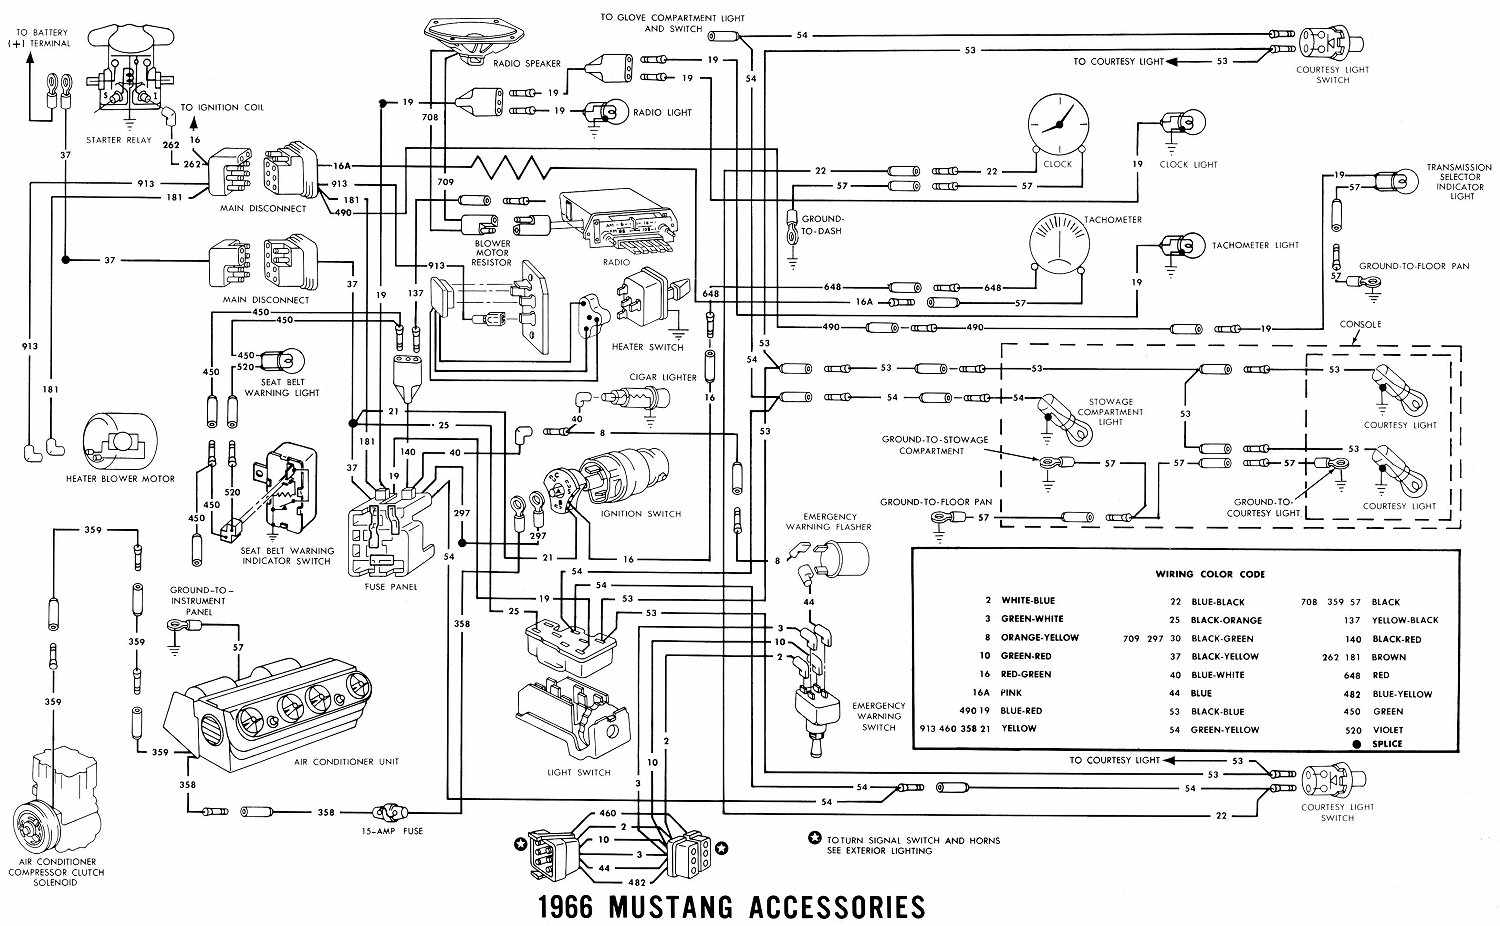 1967 f100 electrical wiring diagram